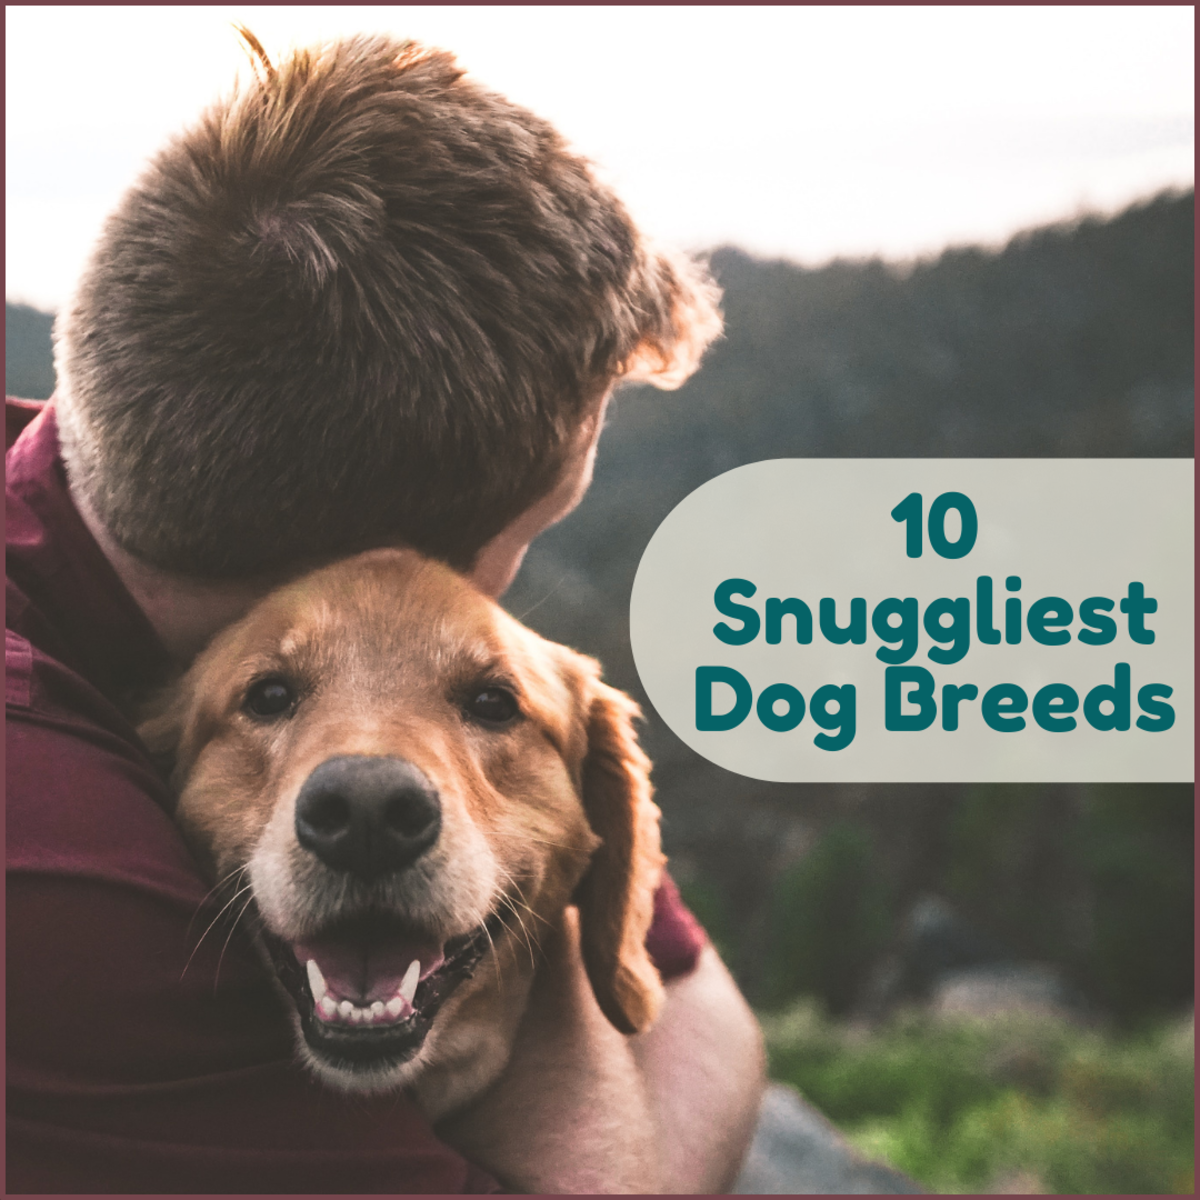 If you're looking for a dog that will happily accept every hug you have to give, this list is for you!